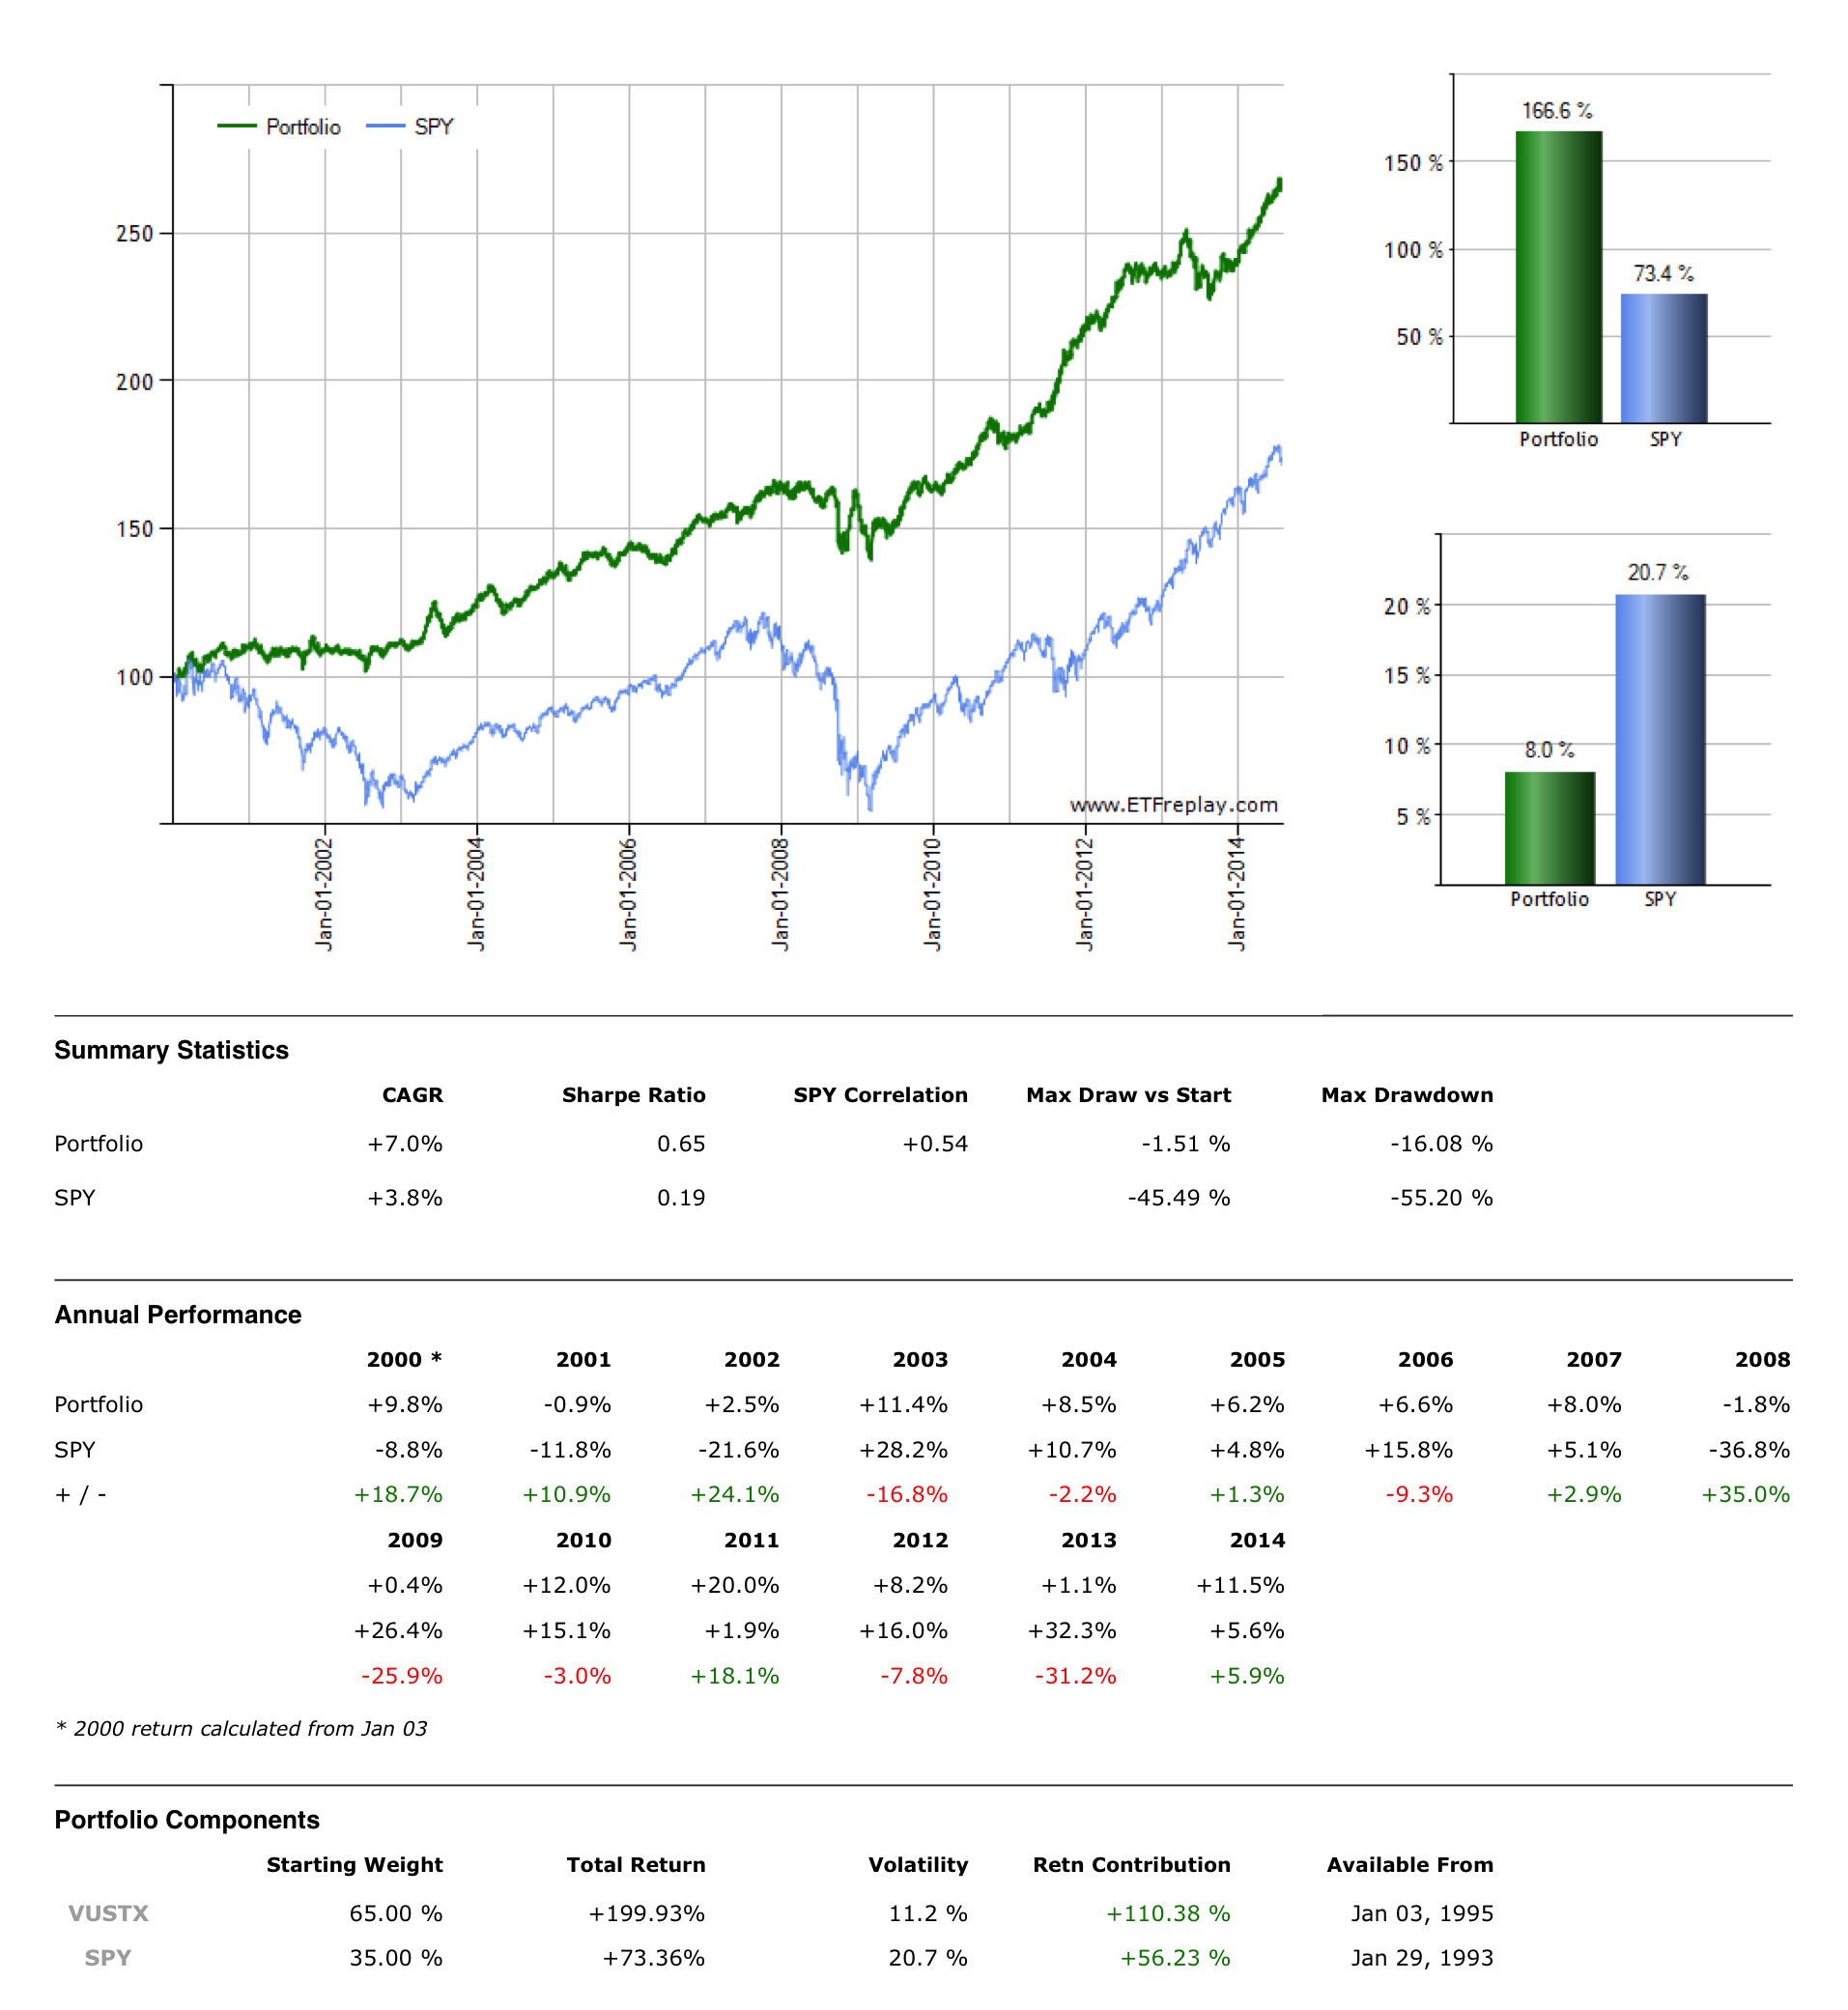 Spxs Quote Simple Hedging Strategies Employing A Short Tmv Position